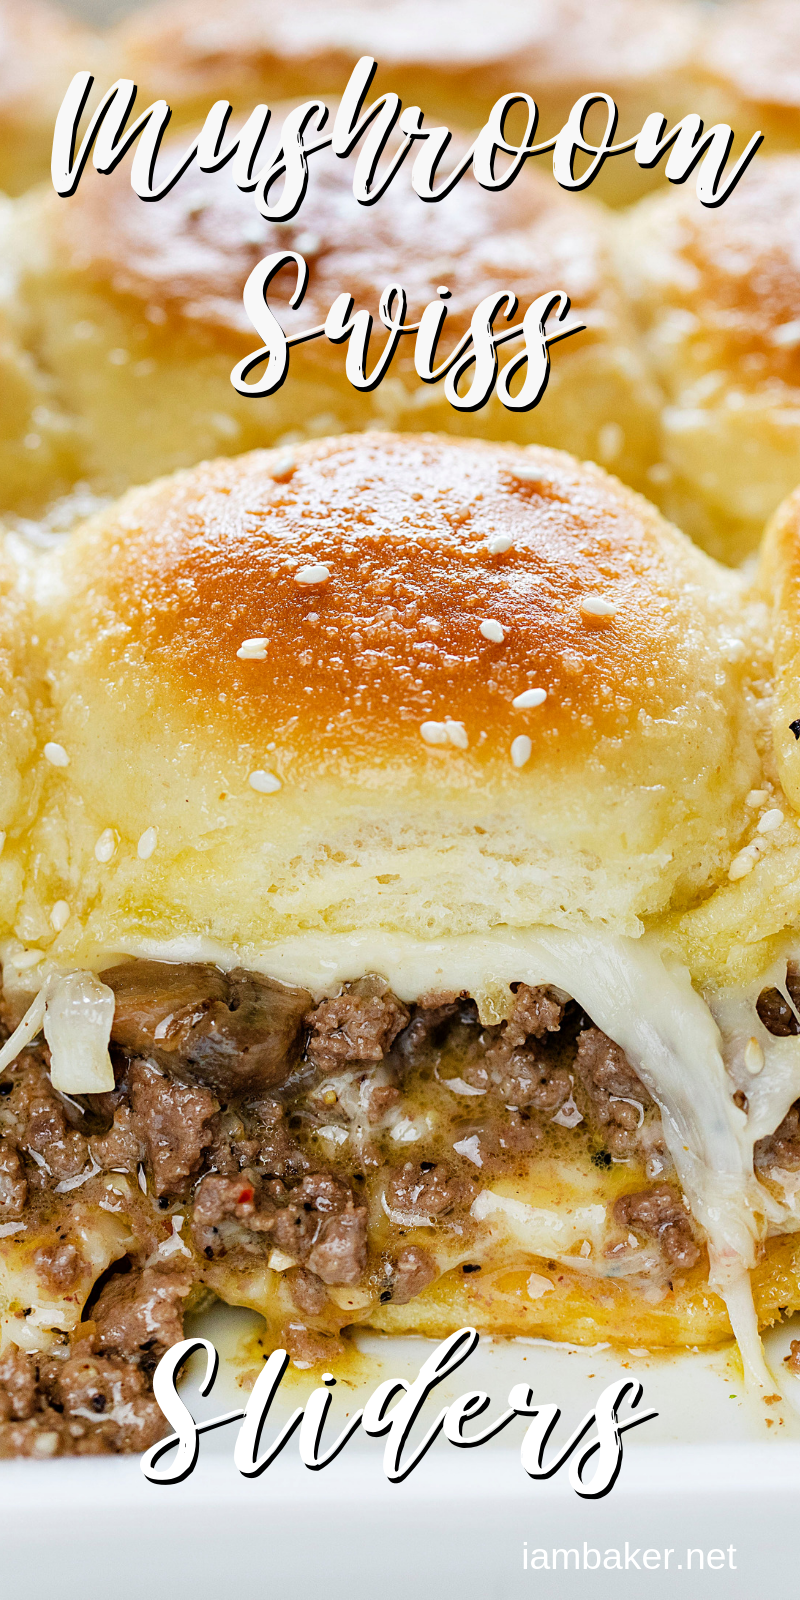 These Mushroom and Swiss Sliders are a unique spin on a traditional Mushroom and Swiss Burger, made with a sweet buttered dinner roll, perfectly seasoned ground beef and a savory Swiss cheese sauce that will leave you wanting more!